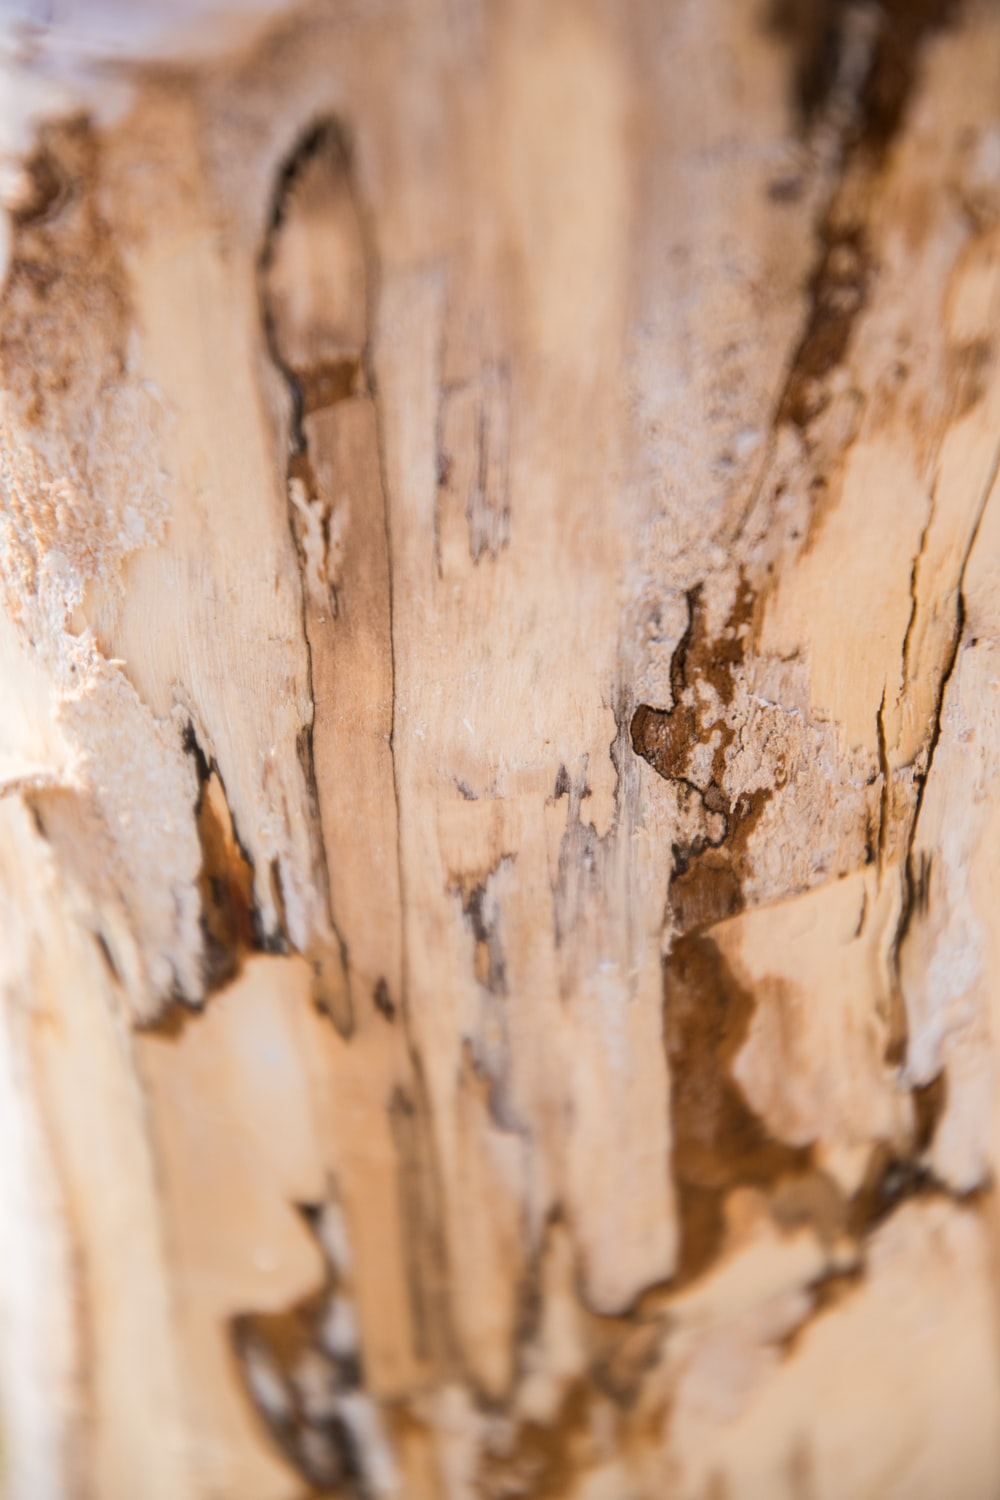 Pest Infestation - Termites